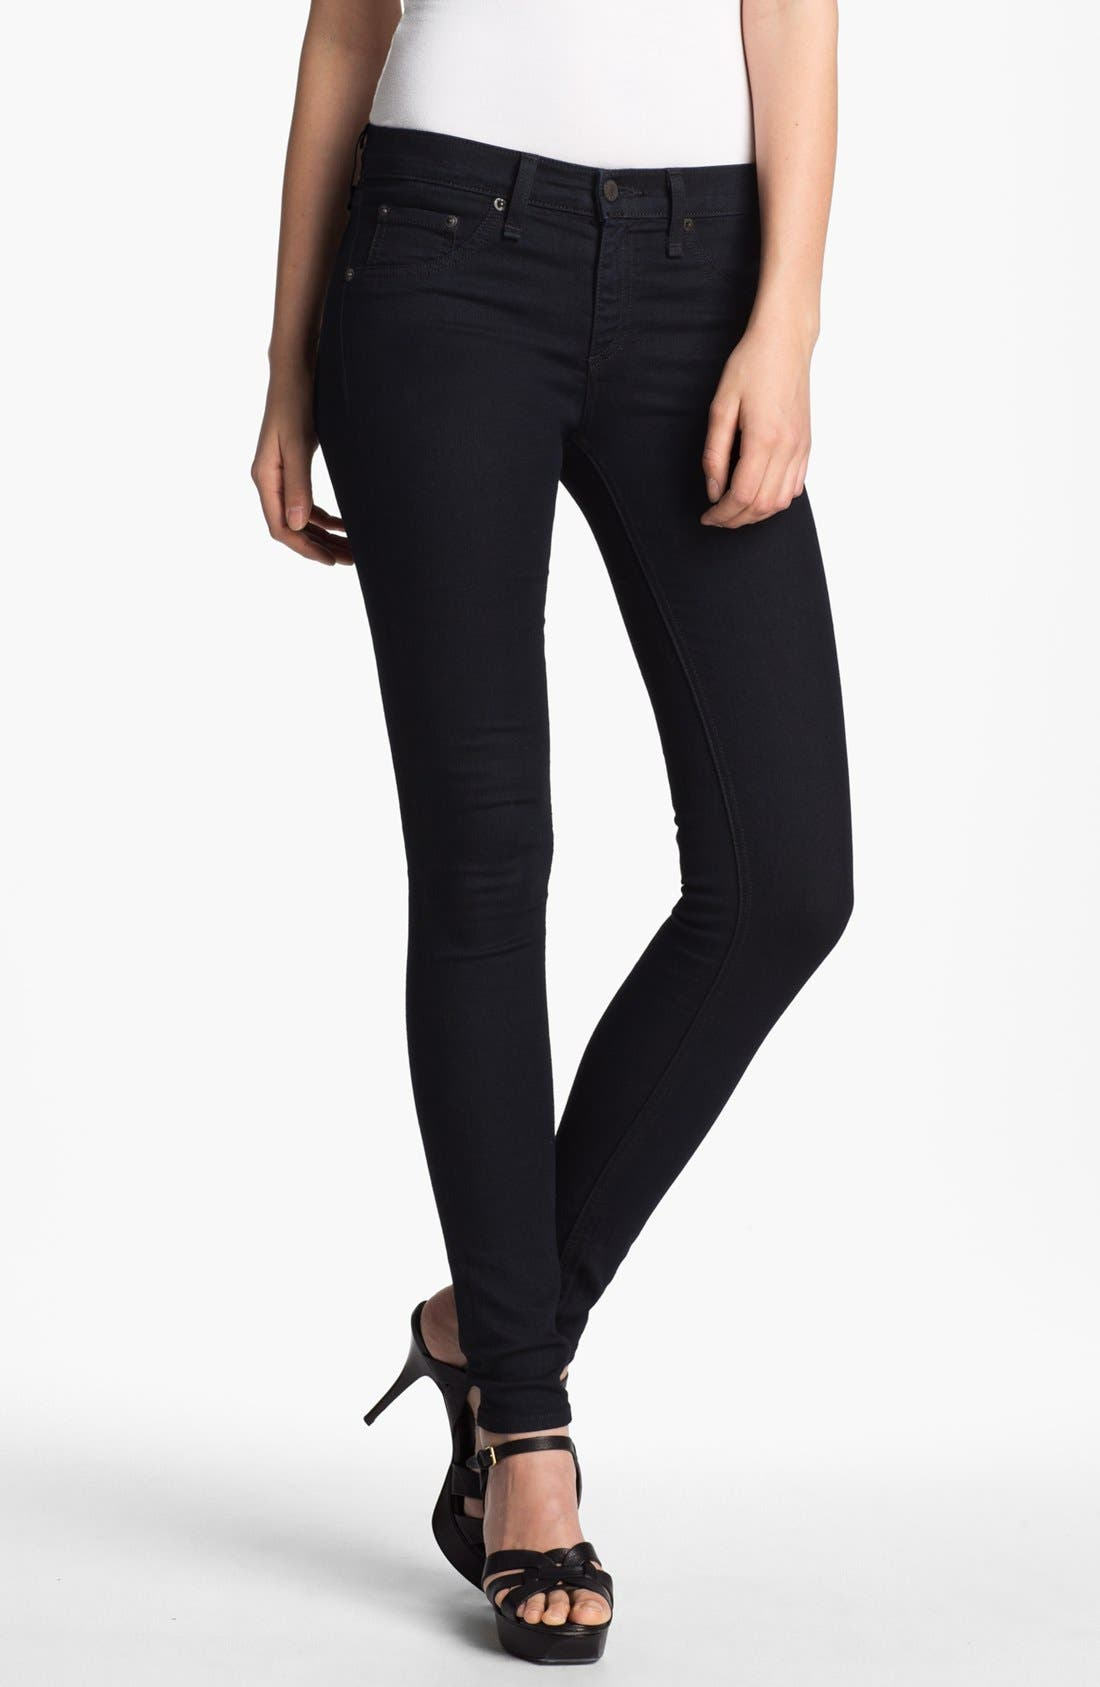 JEAN 'The Legging' Stretch Denim Leggings,                             Main thumbnail 1, color,                             Midnight